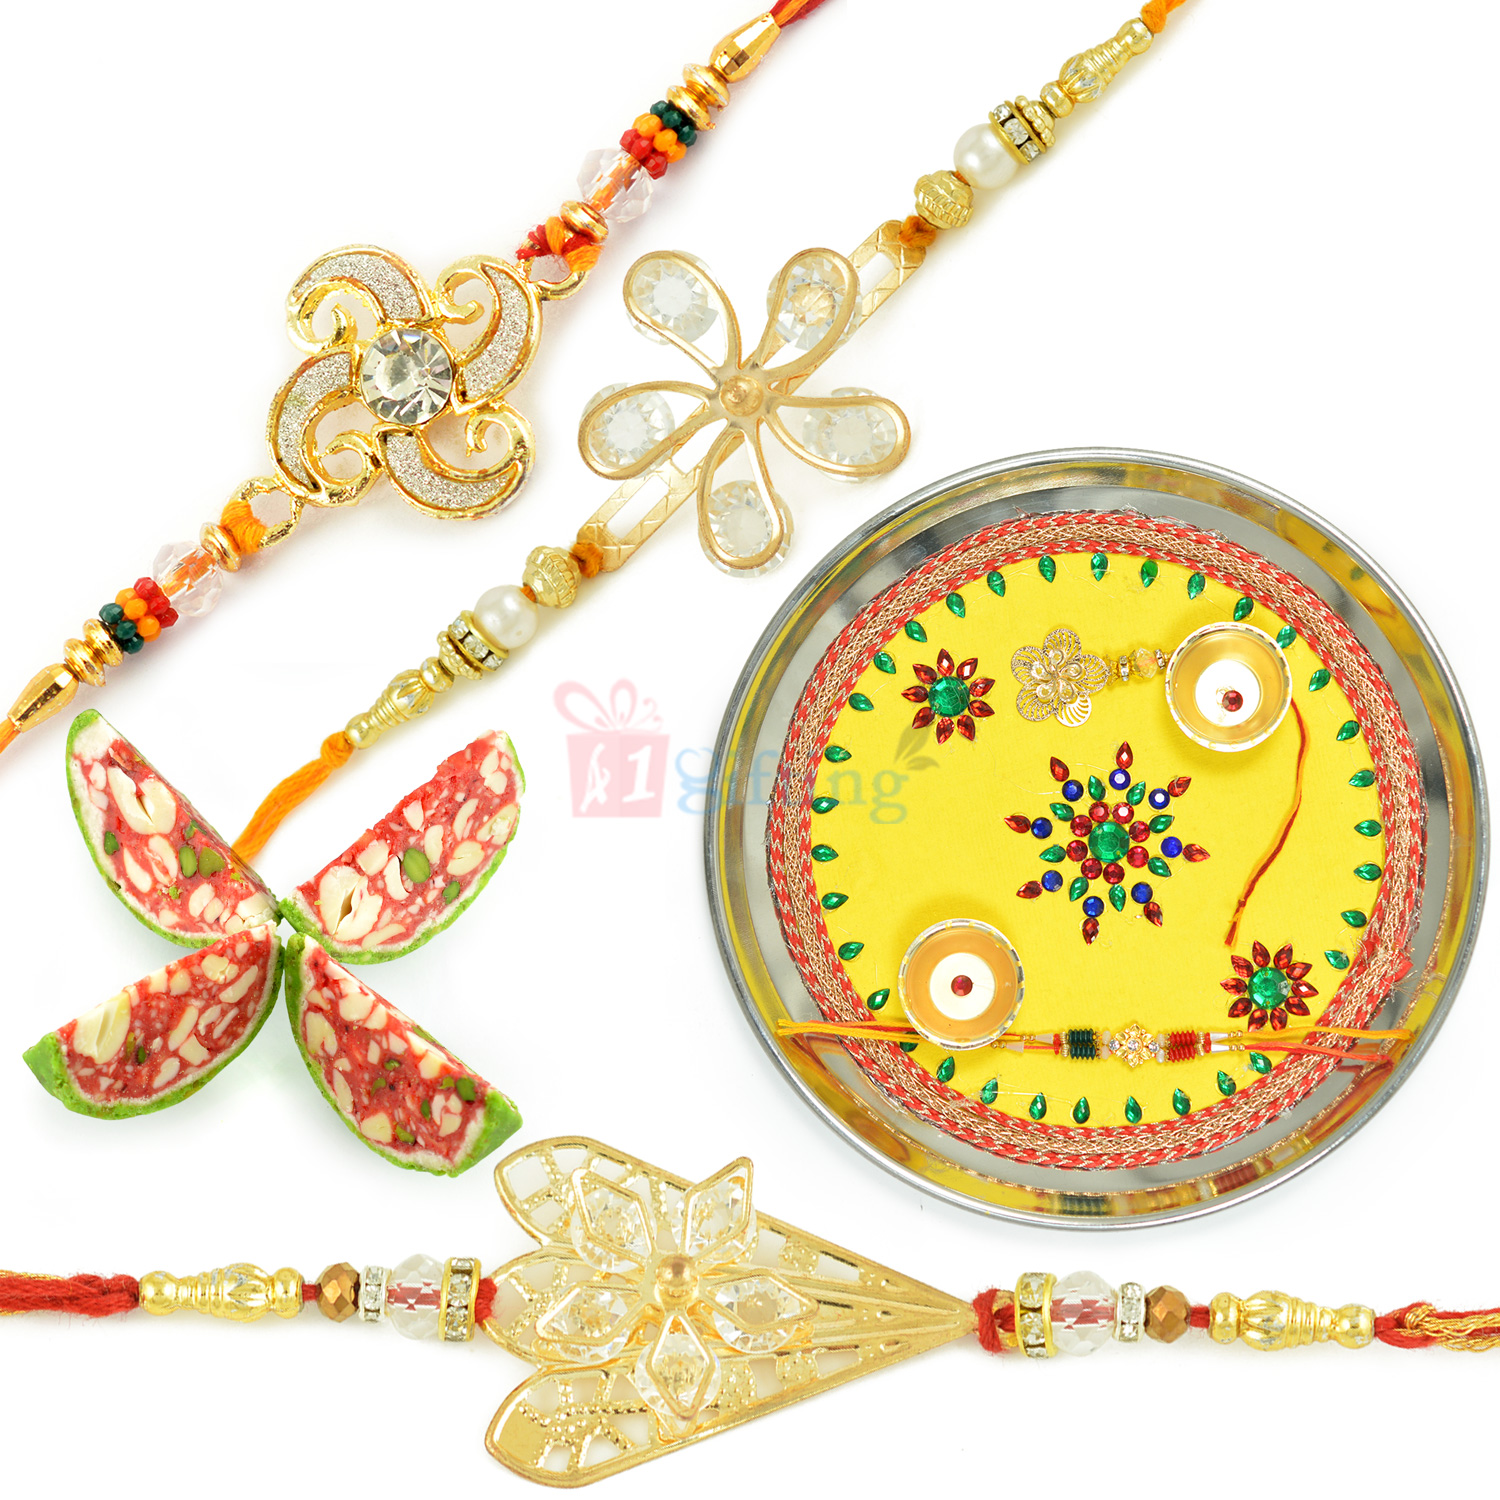 Kaju Tarbooj Mithai with Painted Rakhi Thali and 3 Exclusive Rakhi Hamper